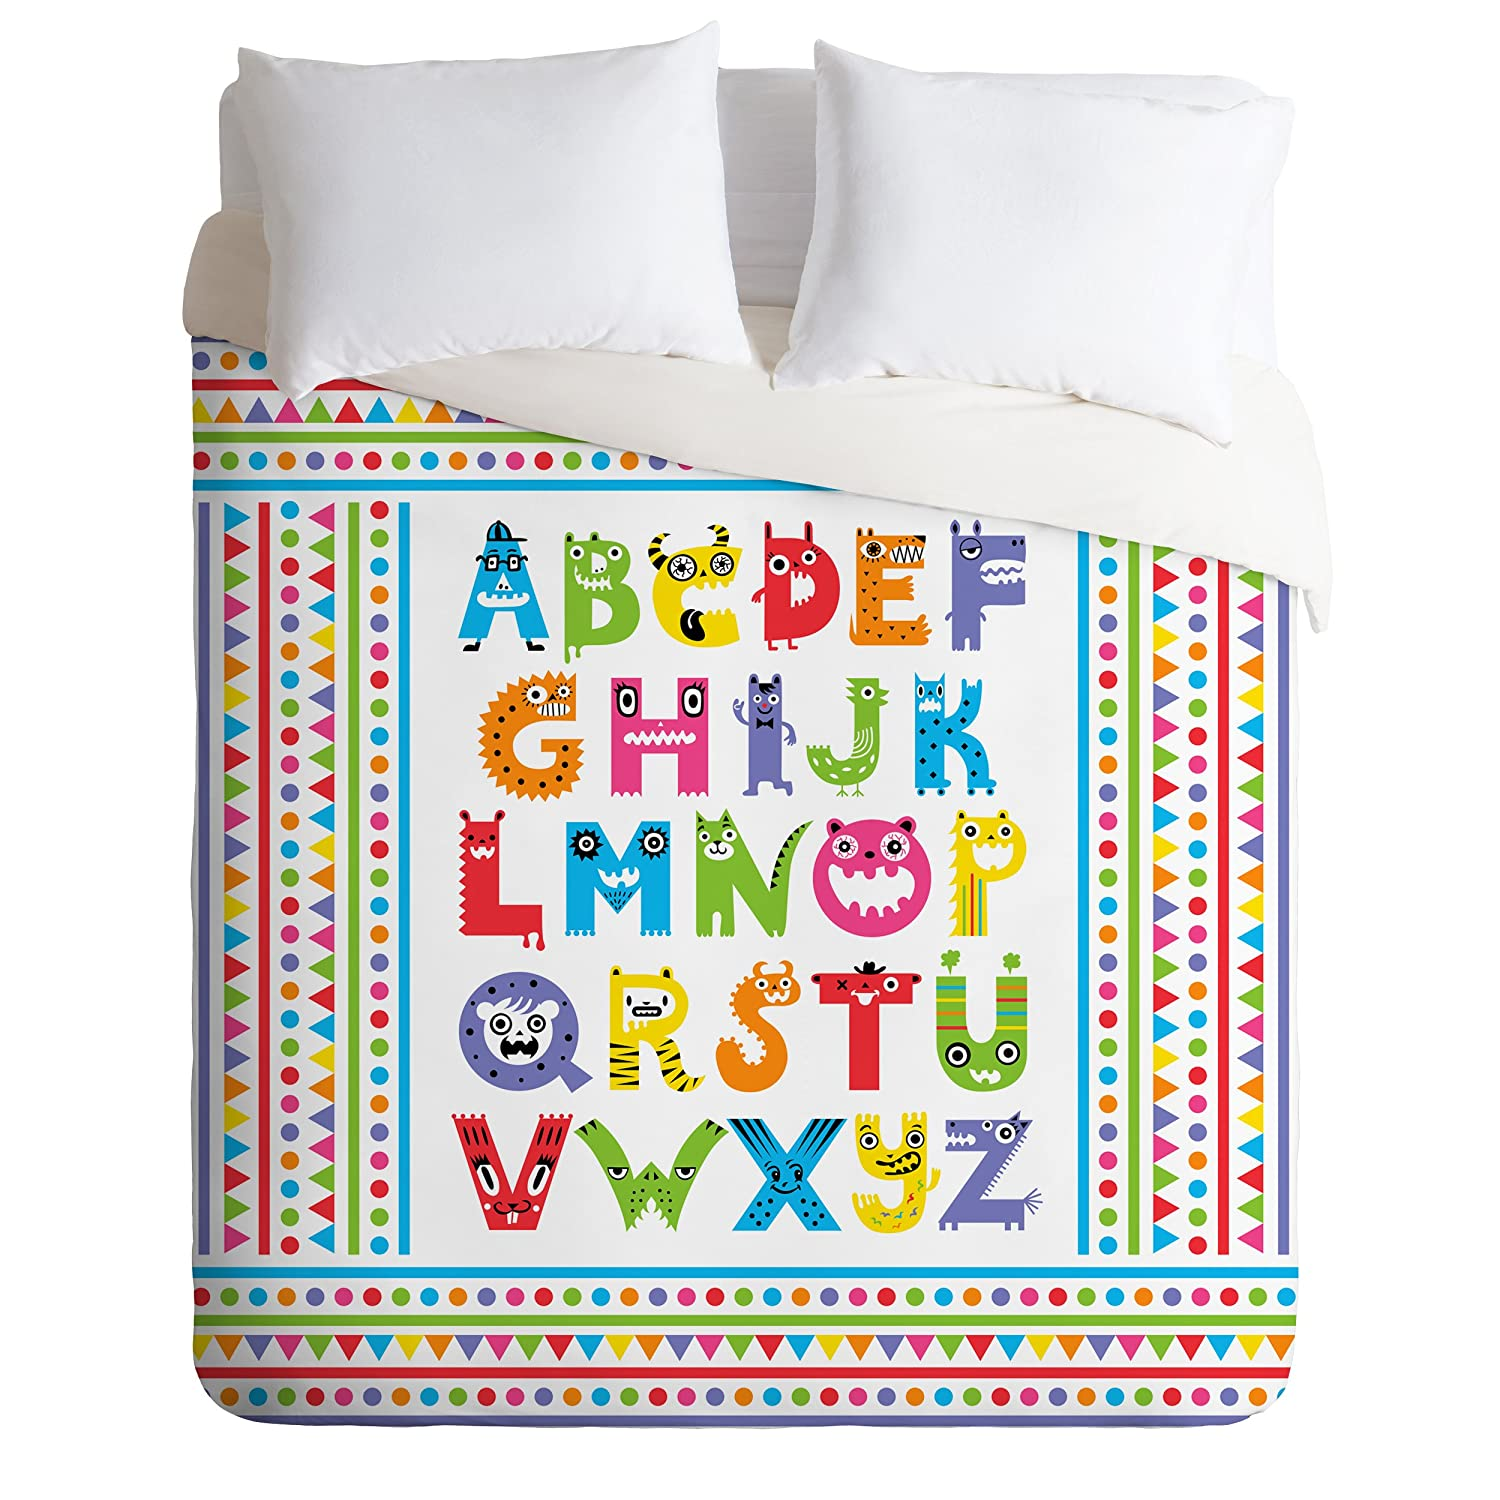 Deny Designs Andi Bird Alphabet Monsters Duvet Cover, Queen